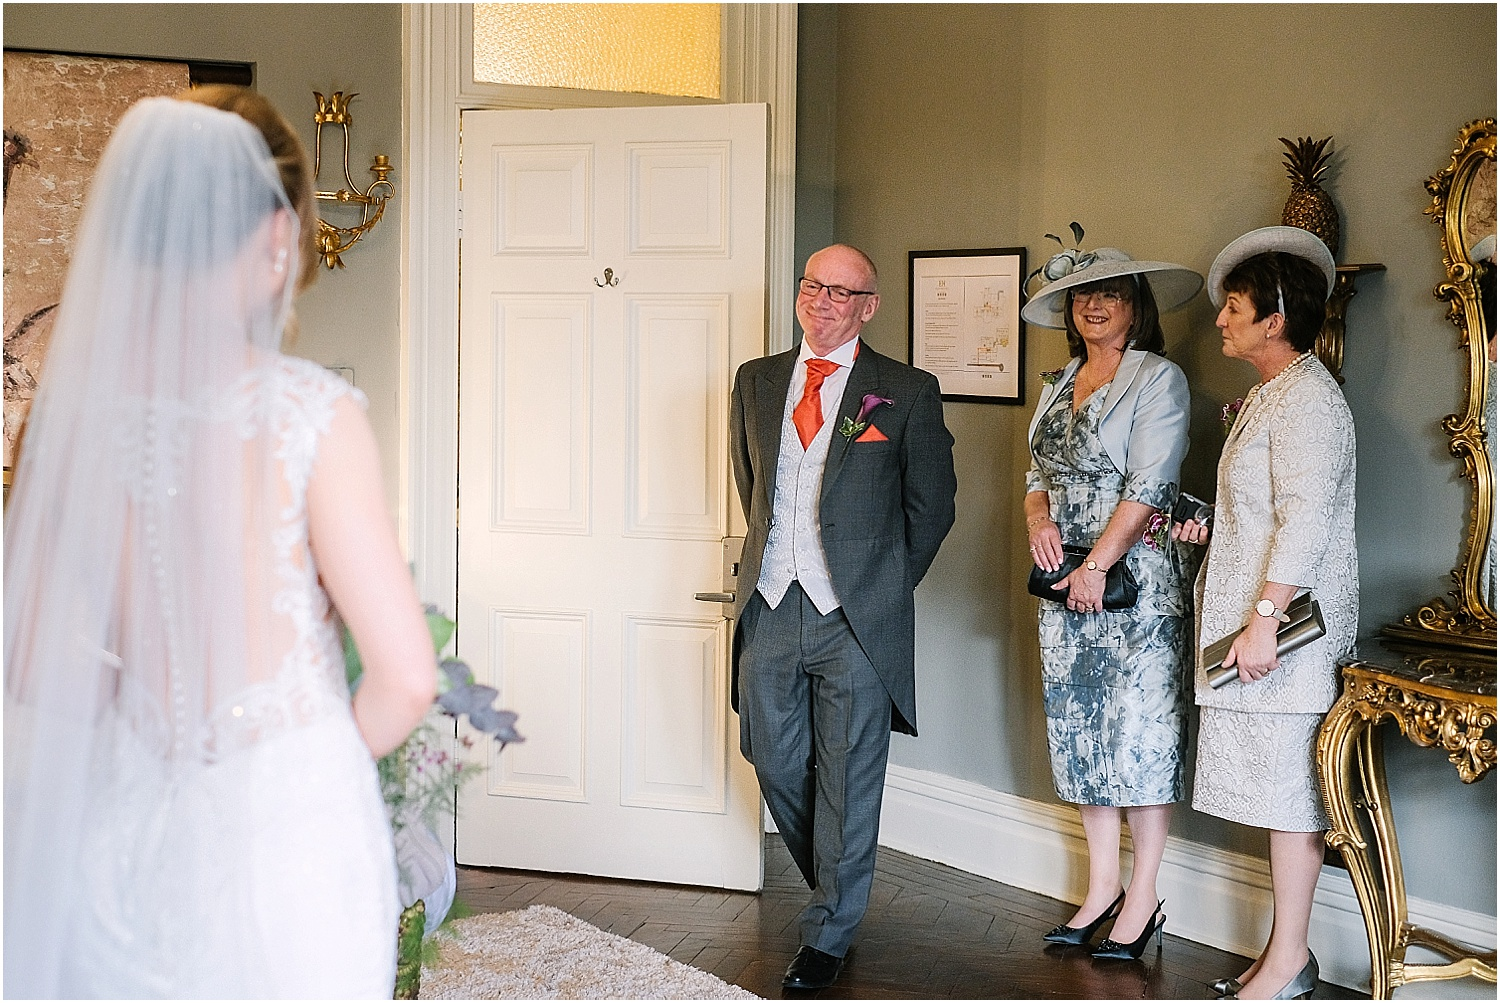 Ellingham Hall wedding photography by 2tone Photography 015.jpg